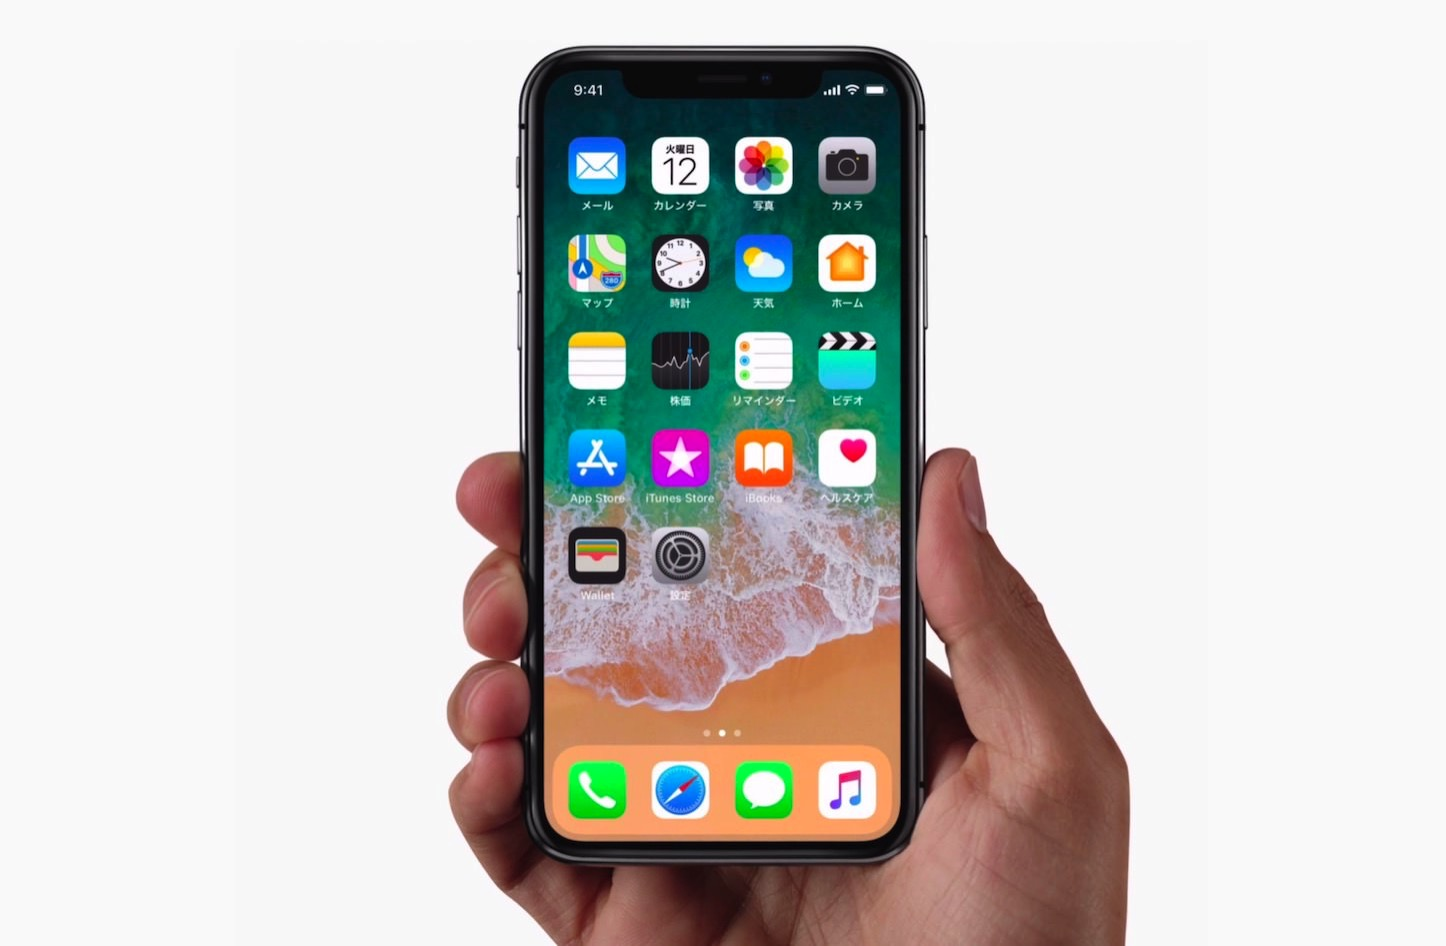 Iphonex screenshot